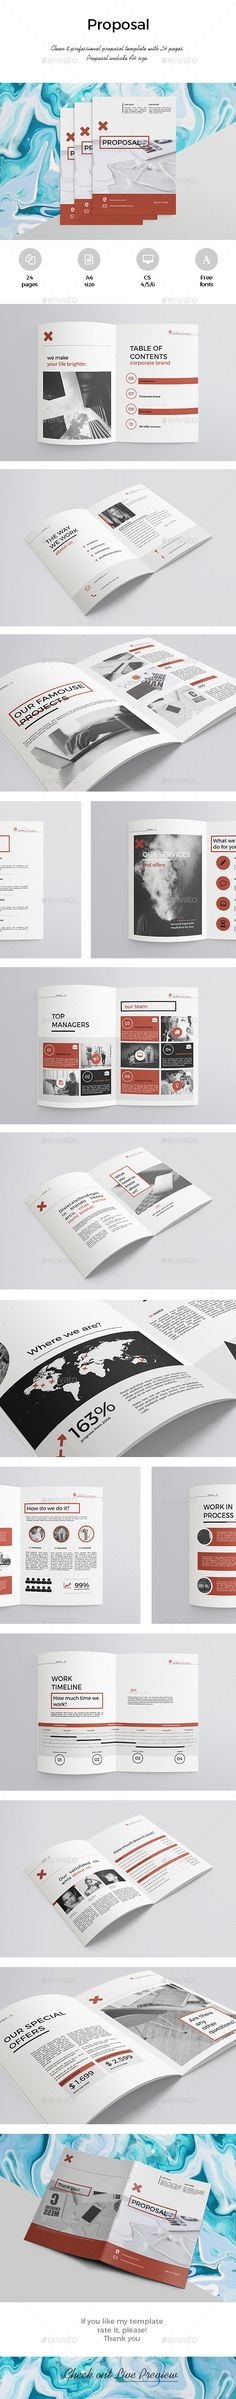 Invoice Business proposal, Proposal templates and Font logo - invoice page